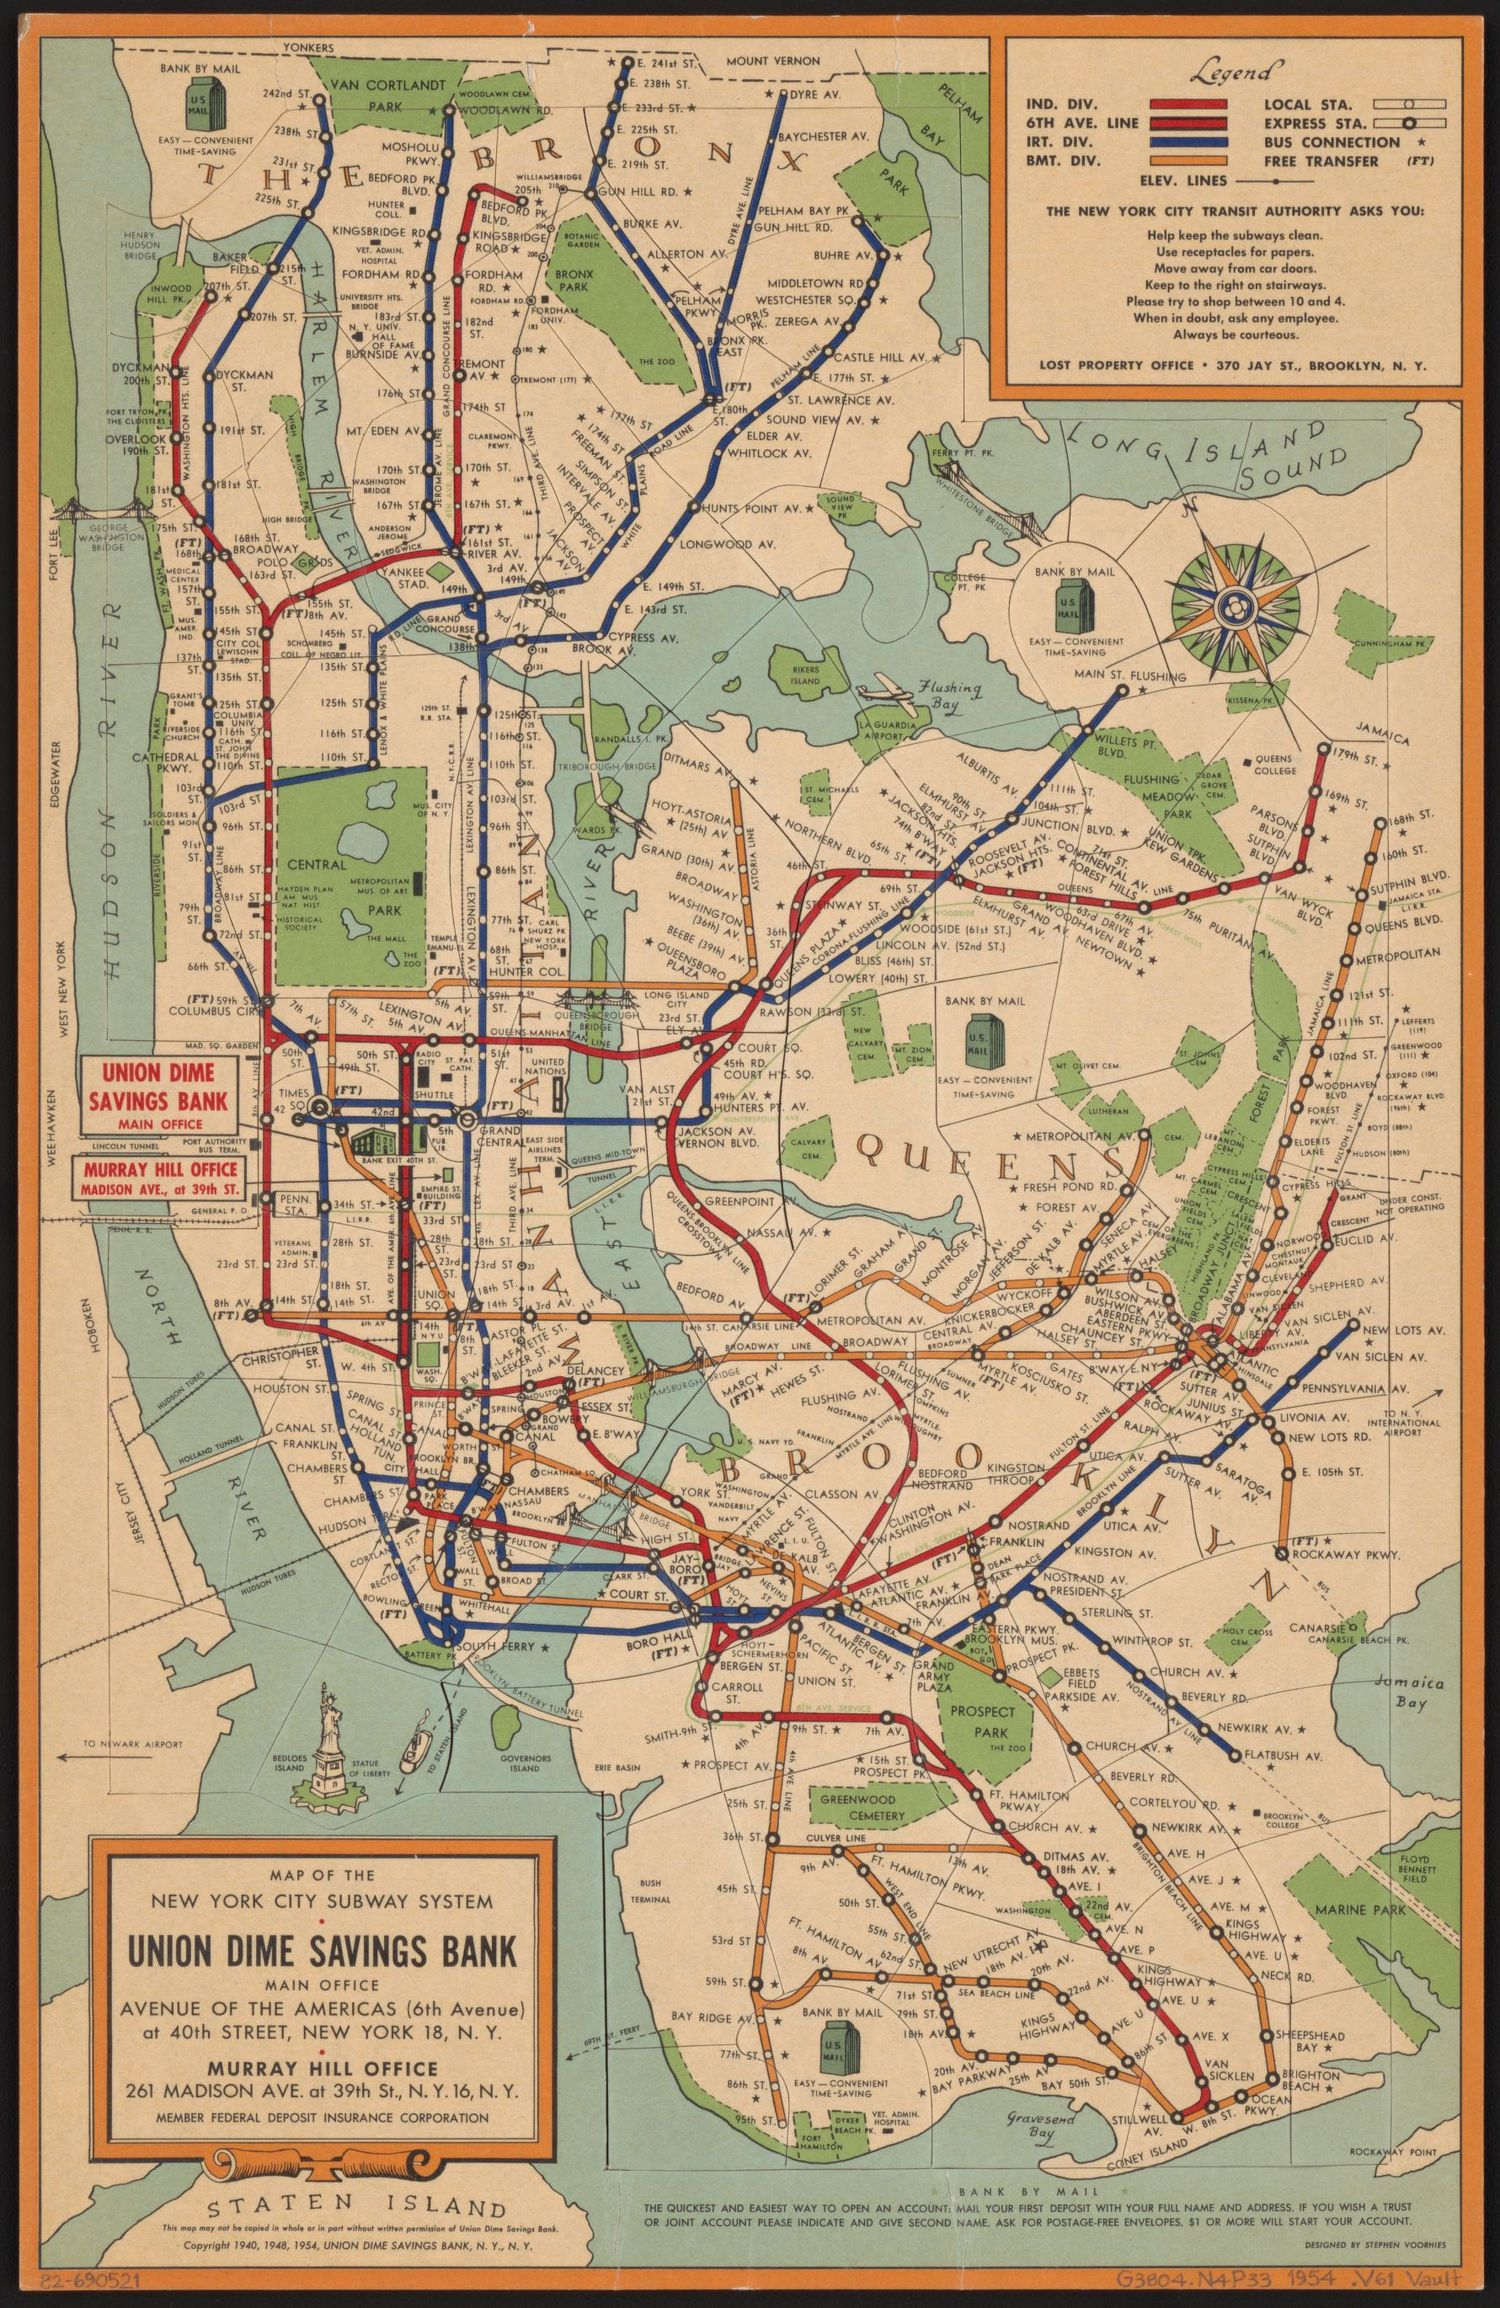 Ny York Subway Map.Maps Vintage Map Shows New York City Subway System In 1954